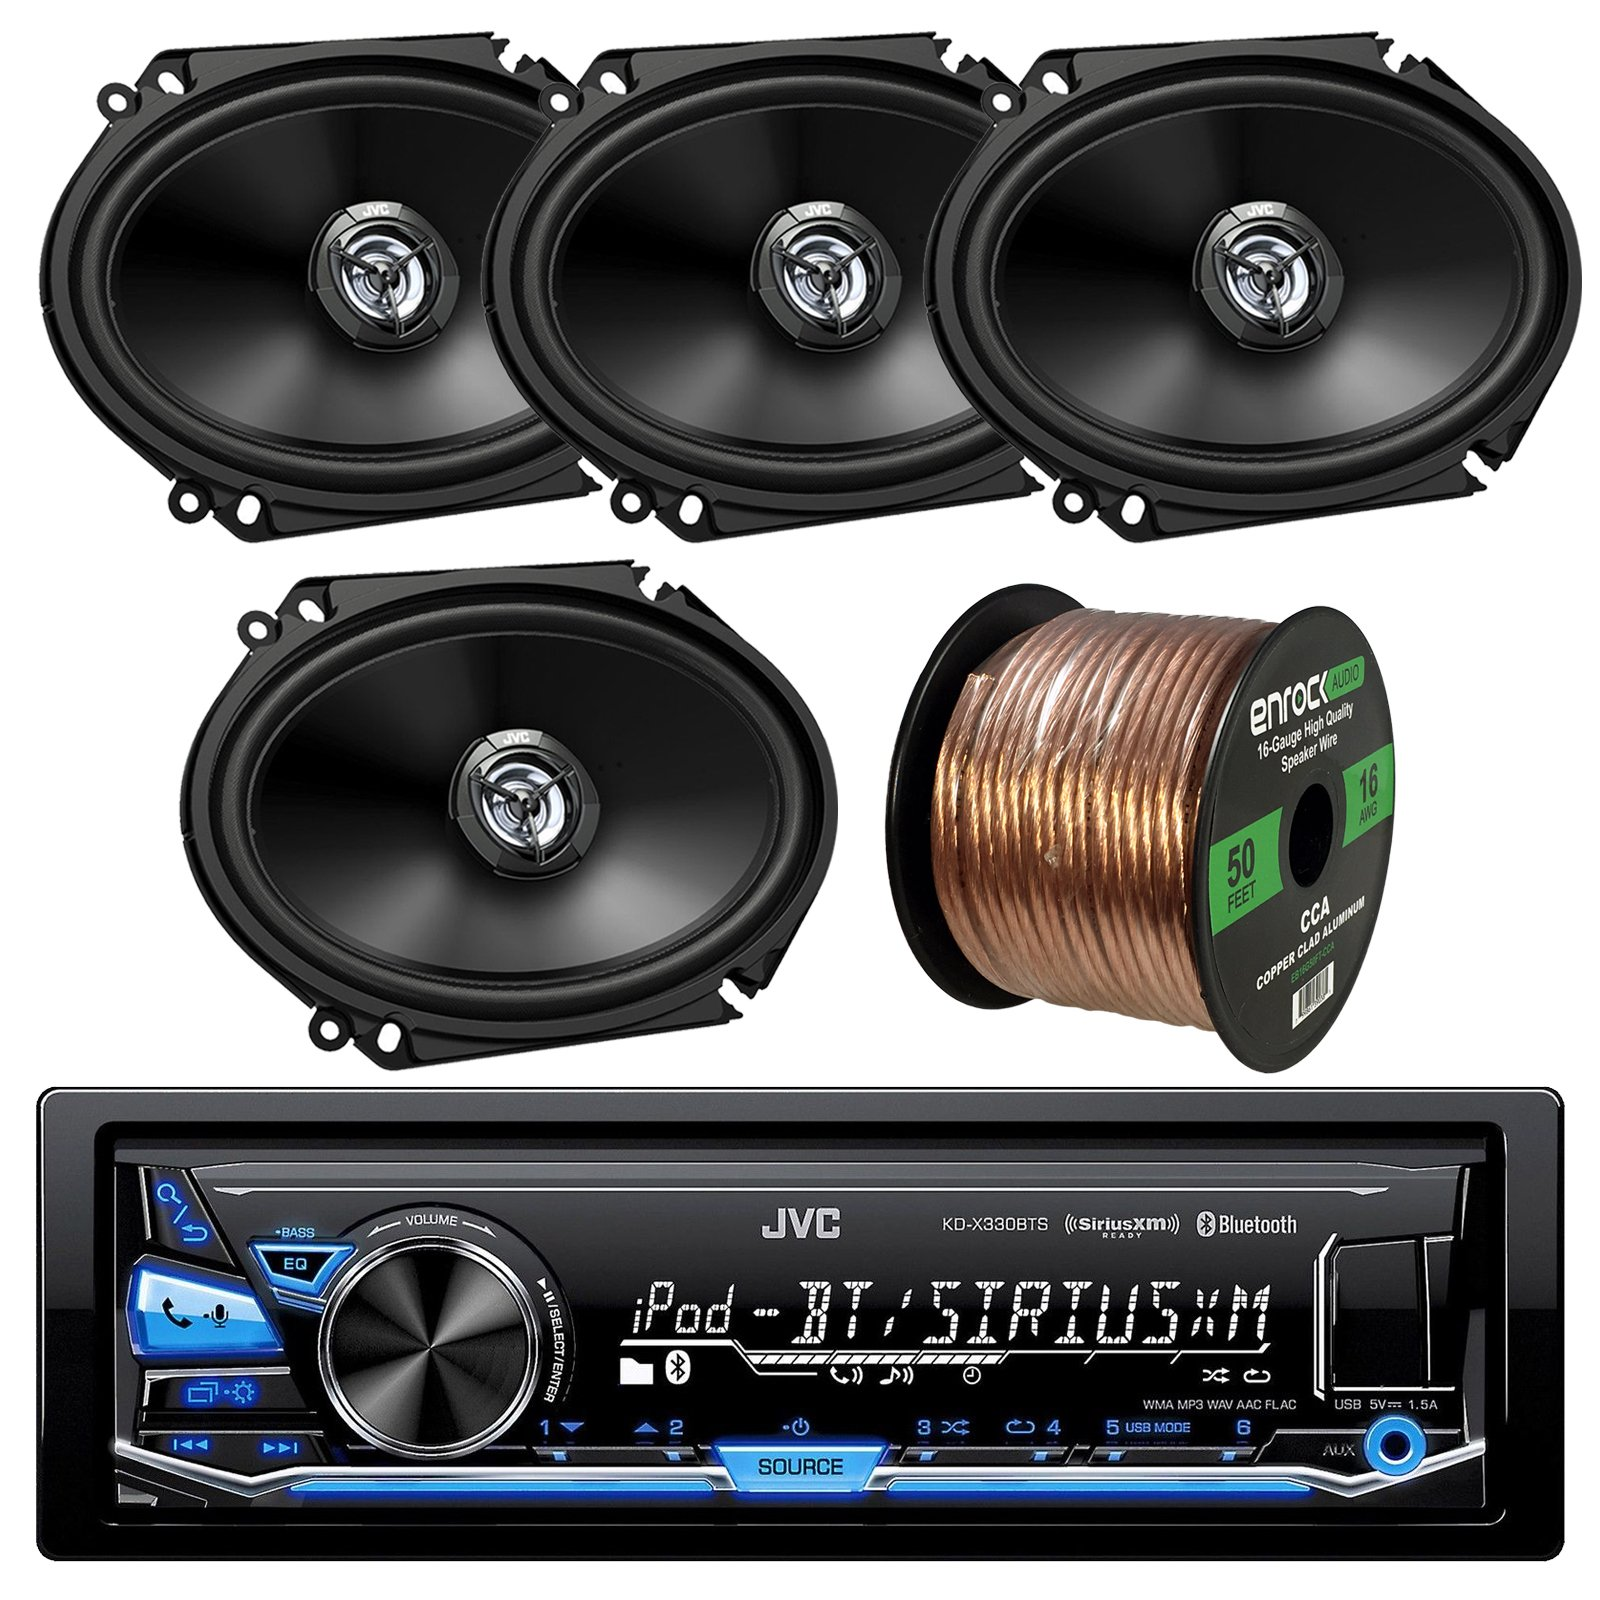 JVC KD-X330BTS AM/FM USB AUX Car Stereo Receiver Bundle Combo With 4x (2 Pairs) CS-DR6820 300-Watt 6x8'' Inch Vehicle Coaxial Speakers + Enrock 50 Feet 16-Gauge Wire